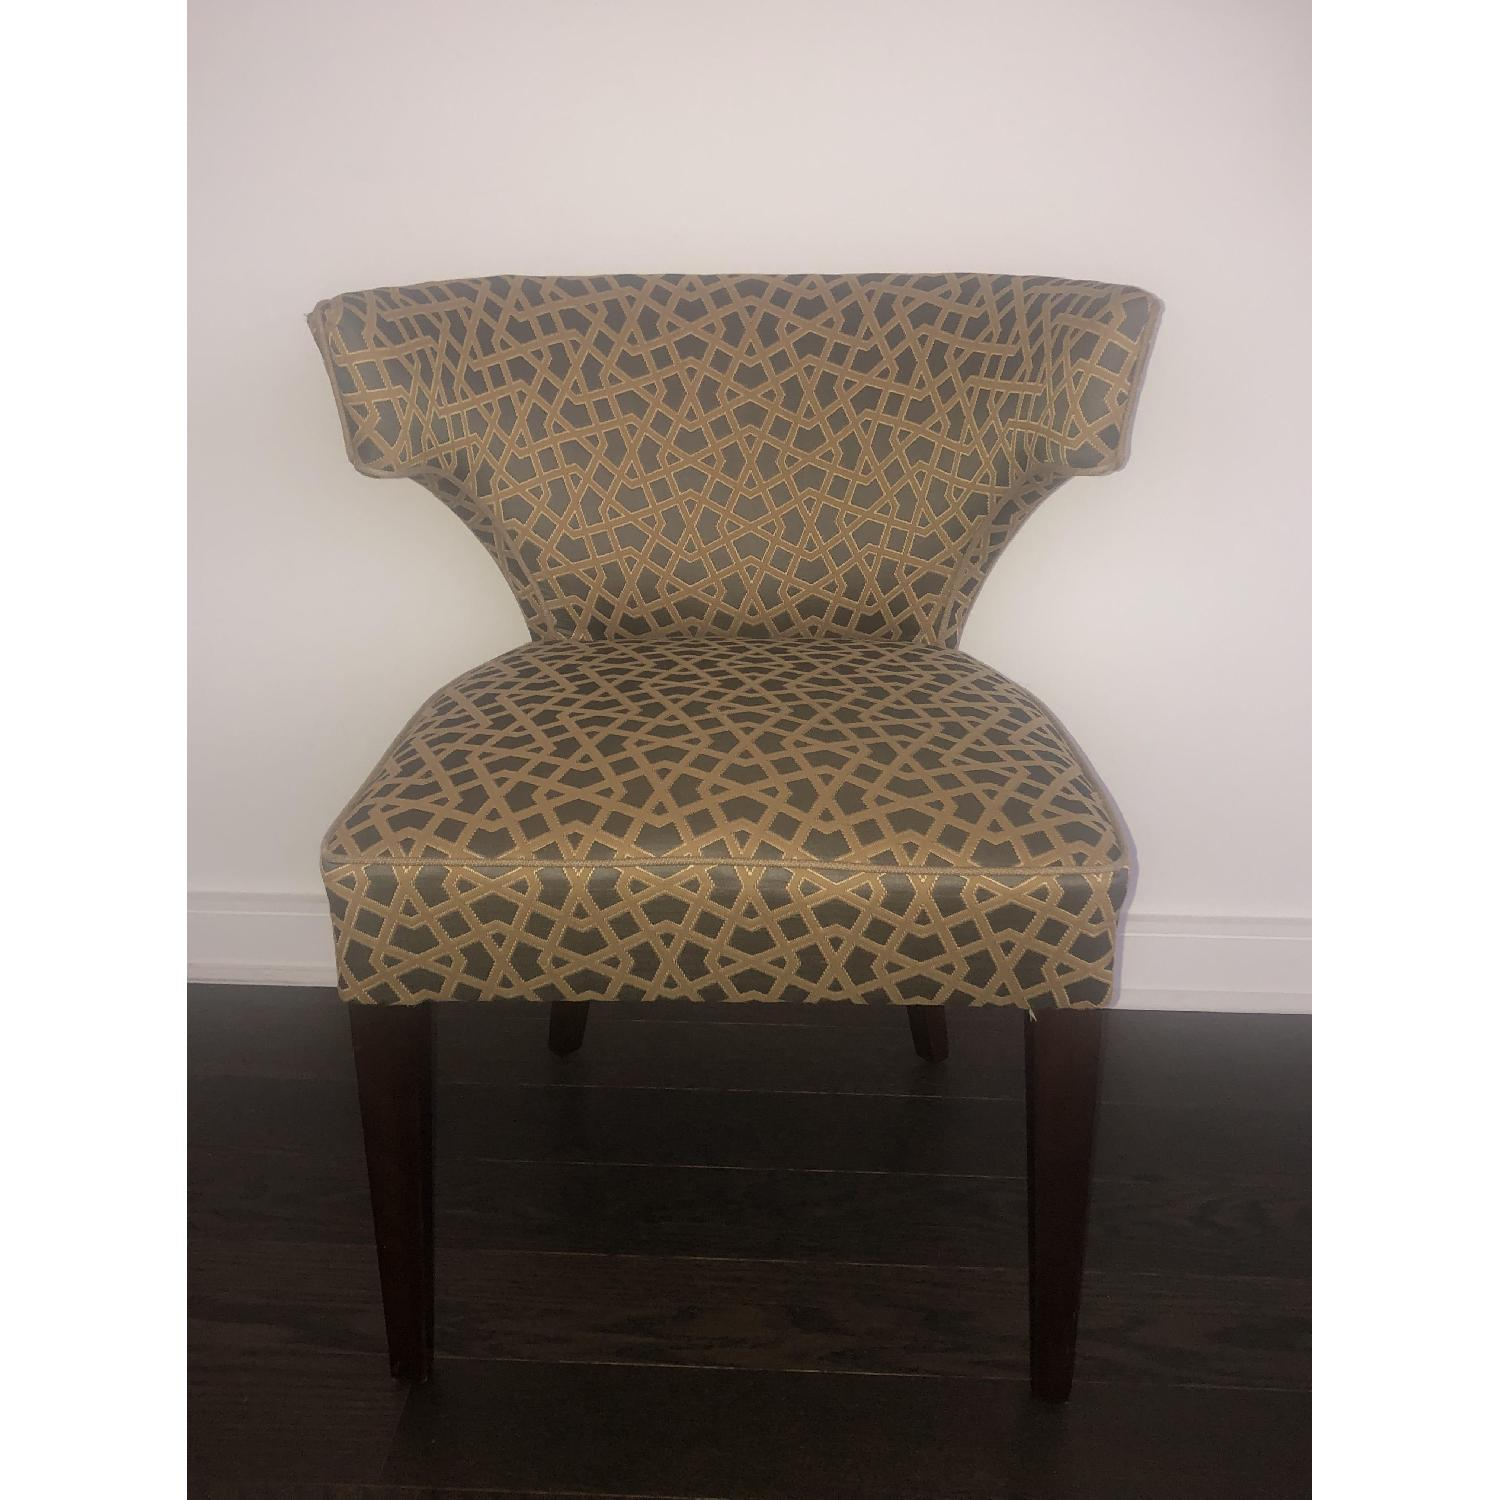 Thomas O'Brien Custom Made Accent Chairs - image-1